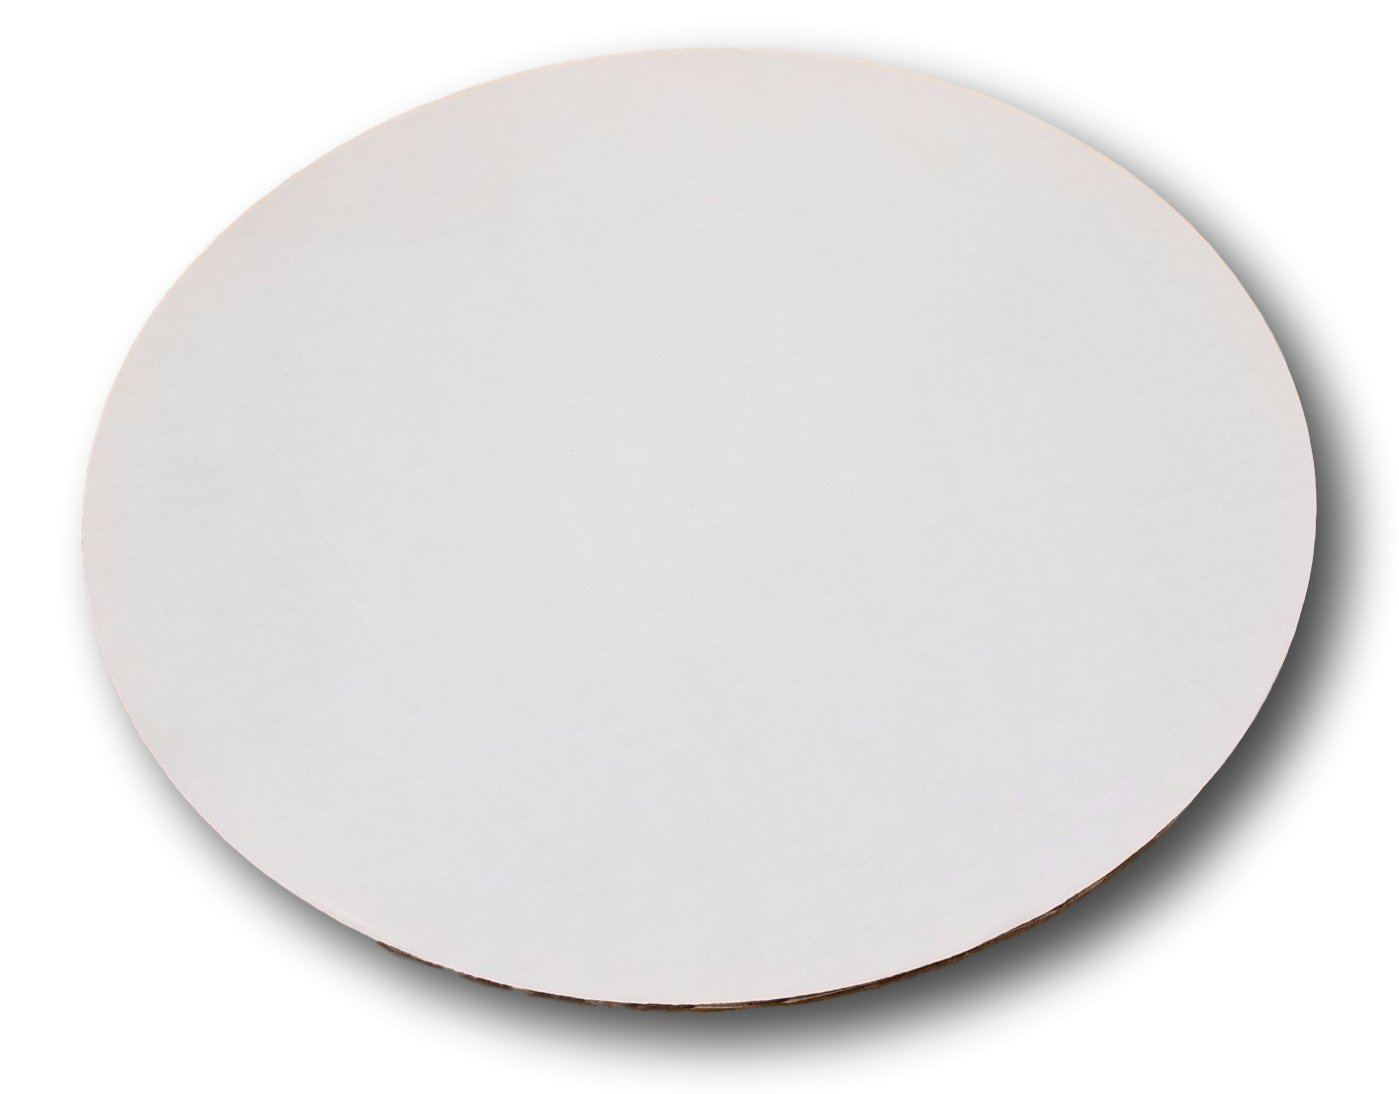 12'' Corrugated Sturdy White Cake/Pizza Circle by MT Products (15 Pieces)